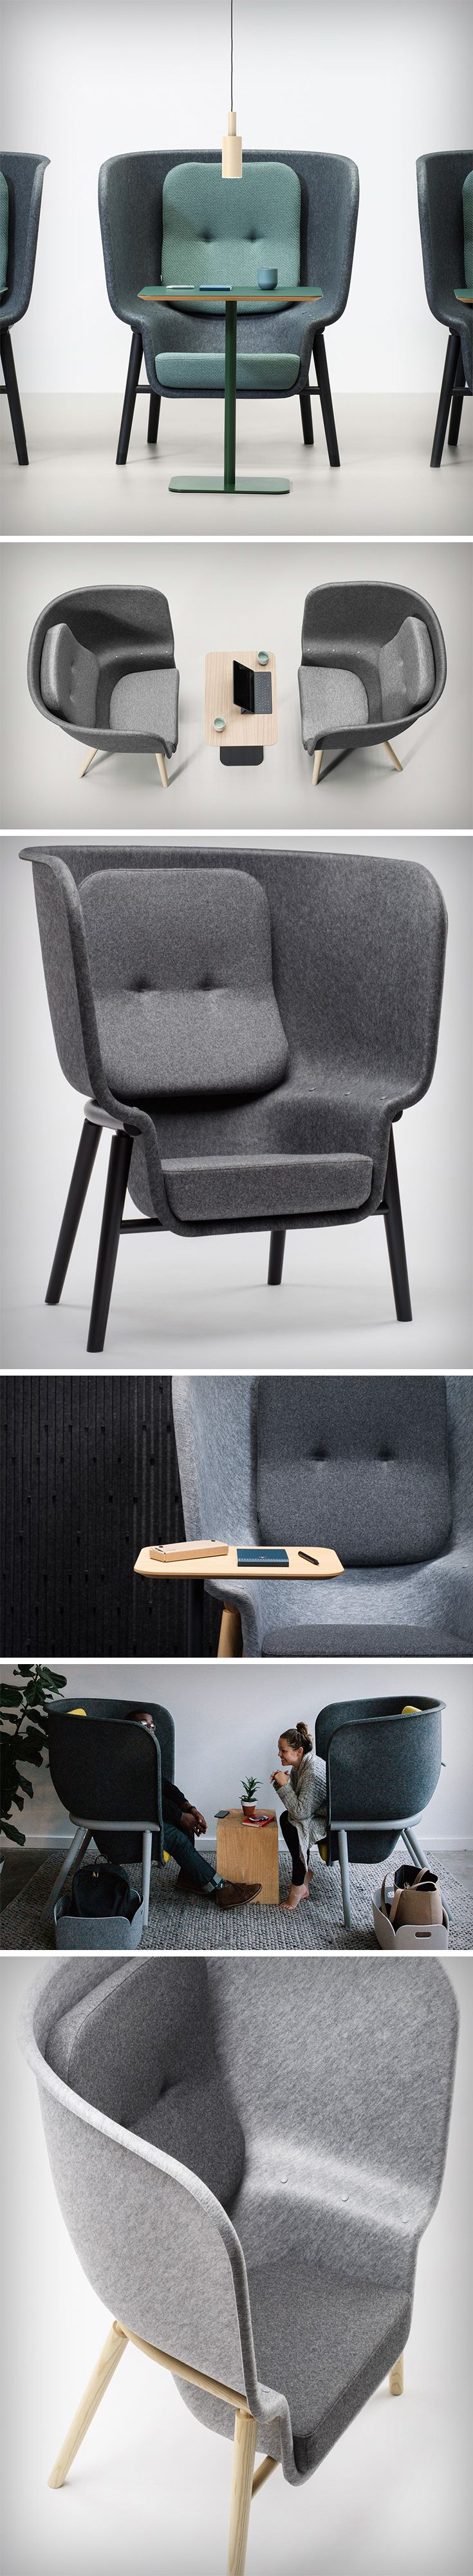 The Pod Chair is a charismatic solution to escaping the modern hustle and bustle of the workplace. Developed using sound dampening properties and materials, The Pod Chair provides the sensation of privacy within noisy, crowded spaces. Upon taking a seat here, the surrounding noise levels are instantly reduced, making it ideal to gain some form of concentration.